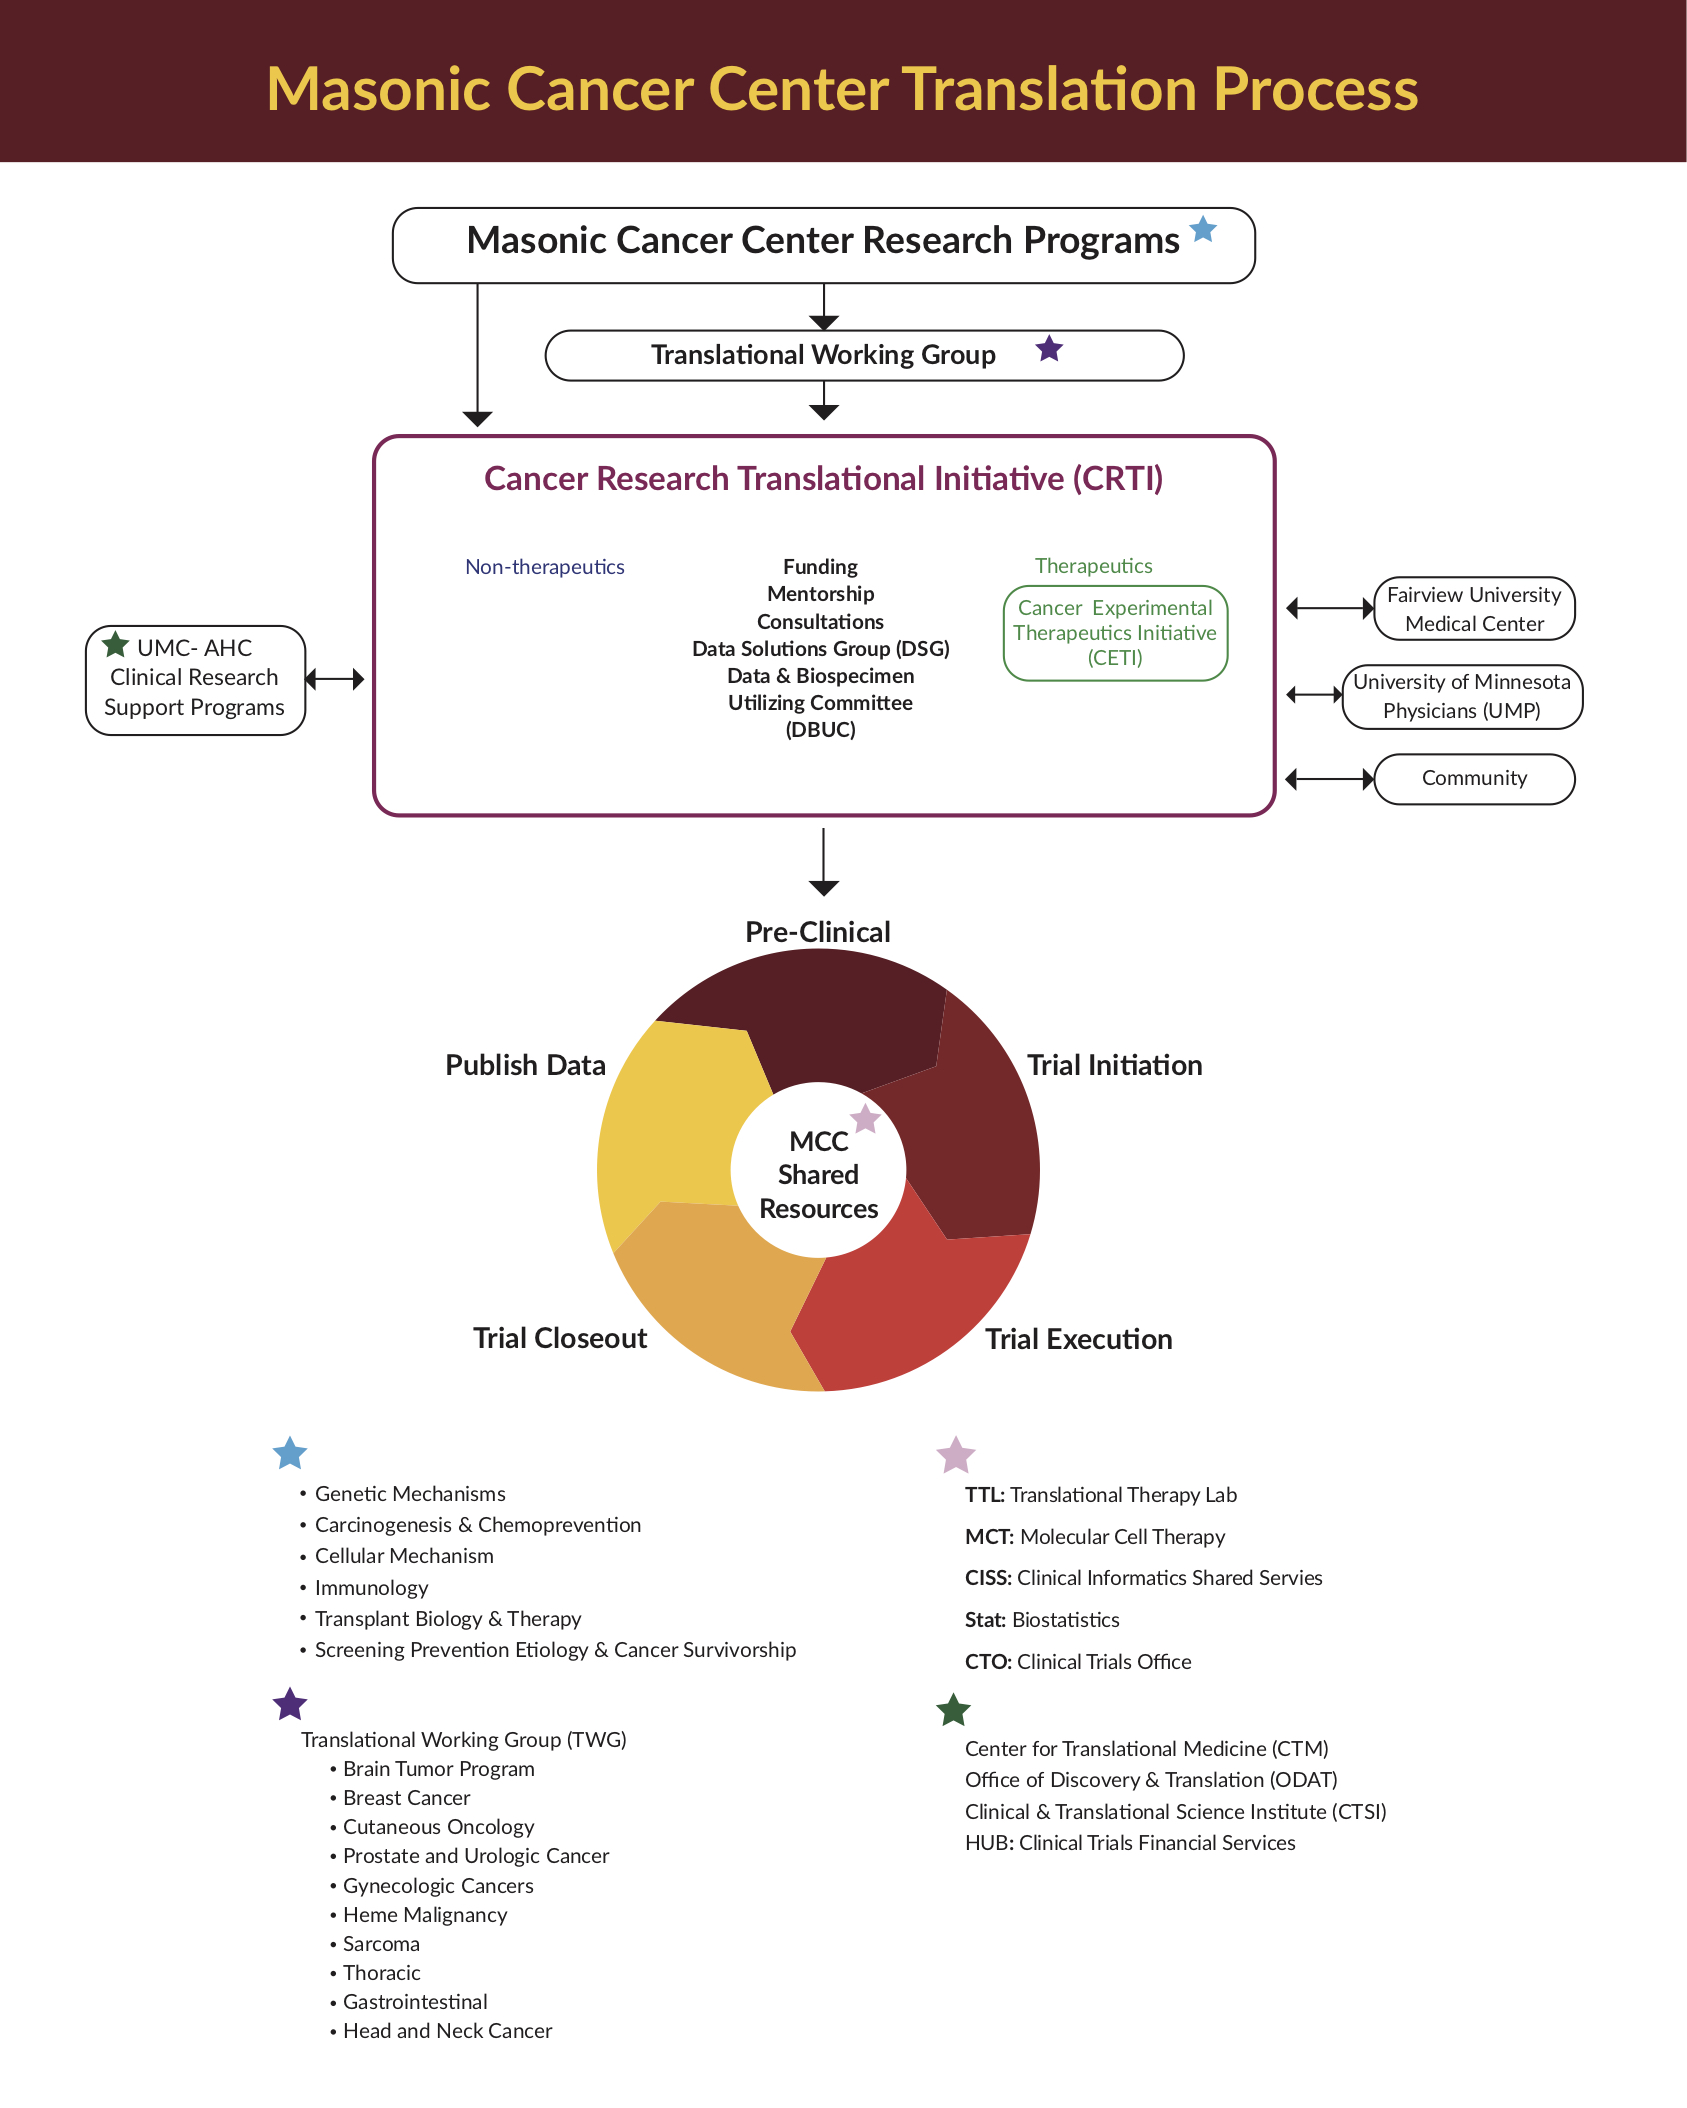 Masonic Cancer Center Tranlastion Process infographics